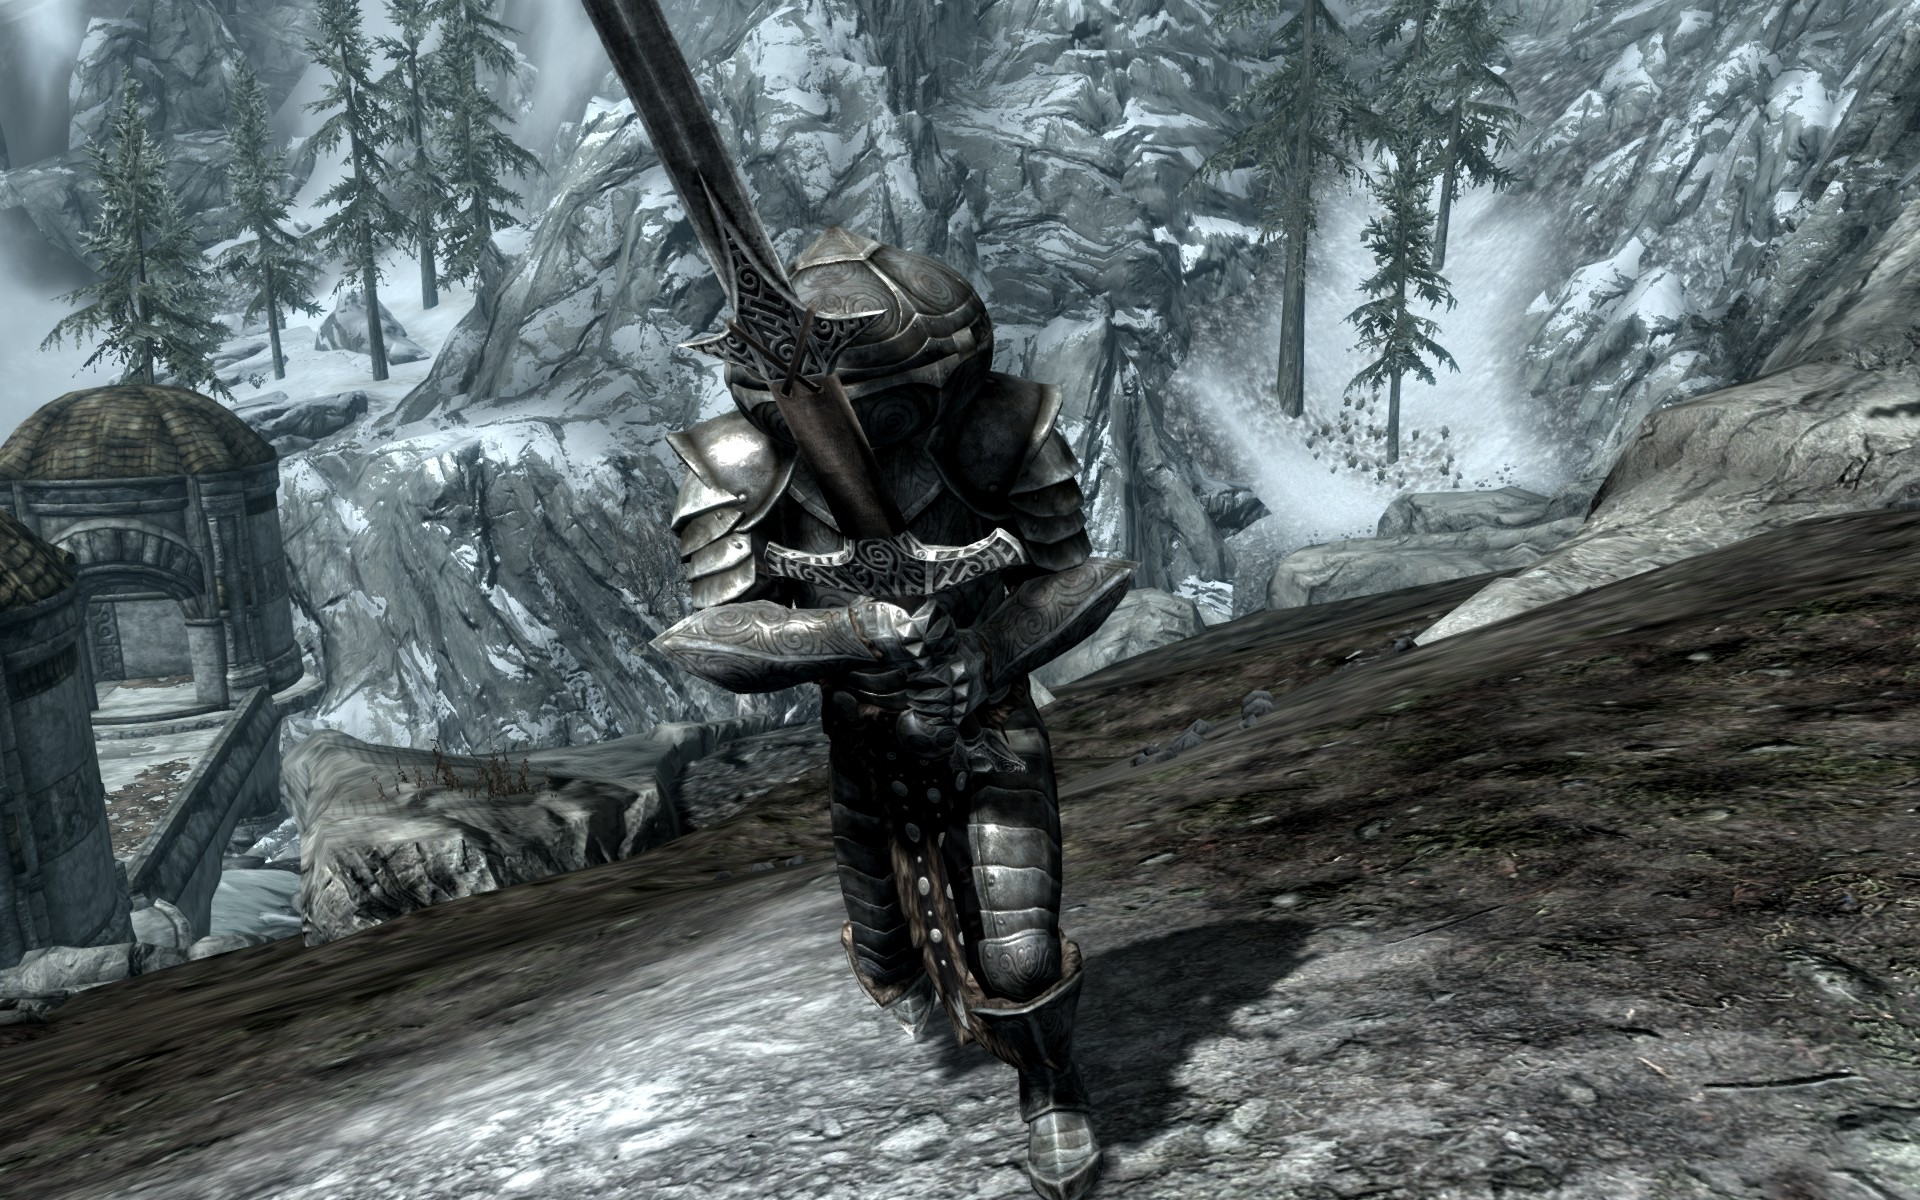 how to open dark souls without access to steam